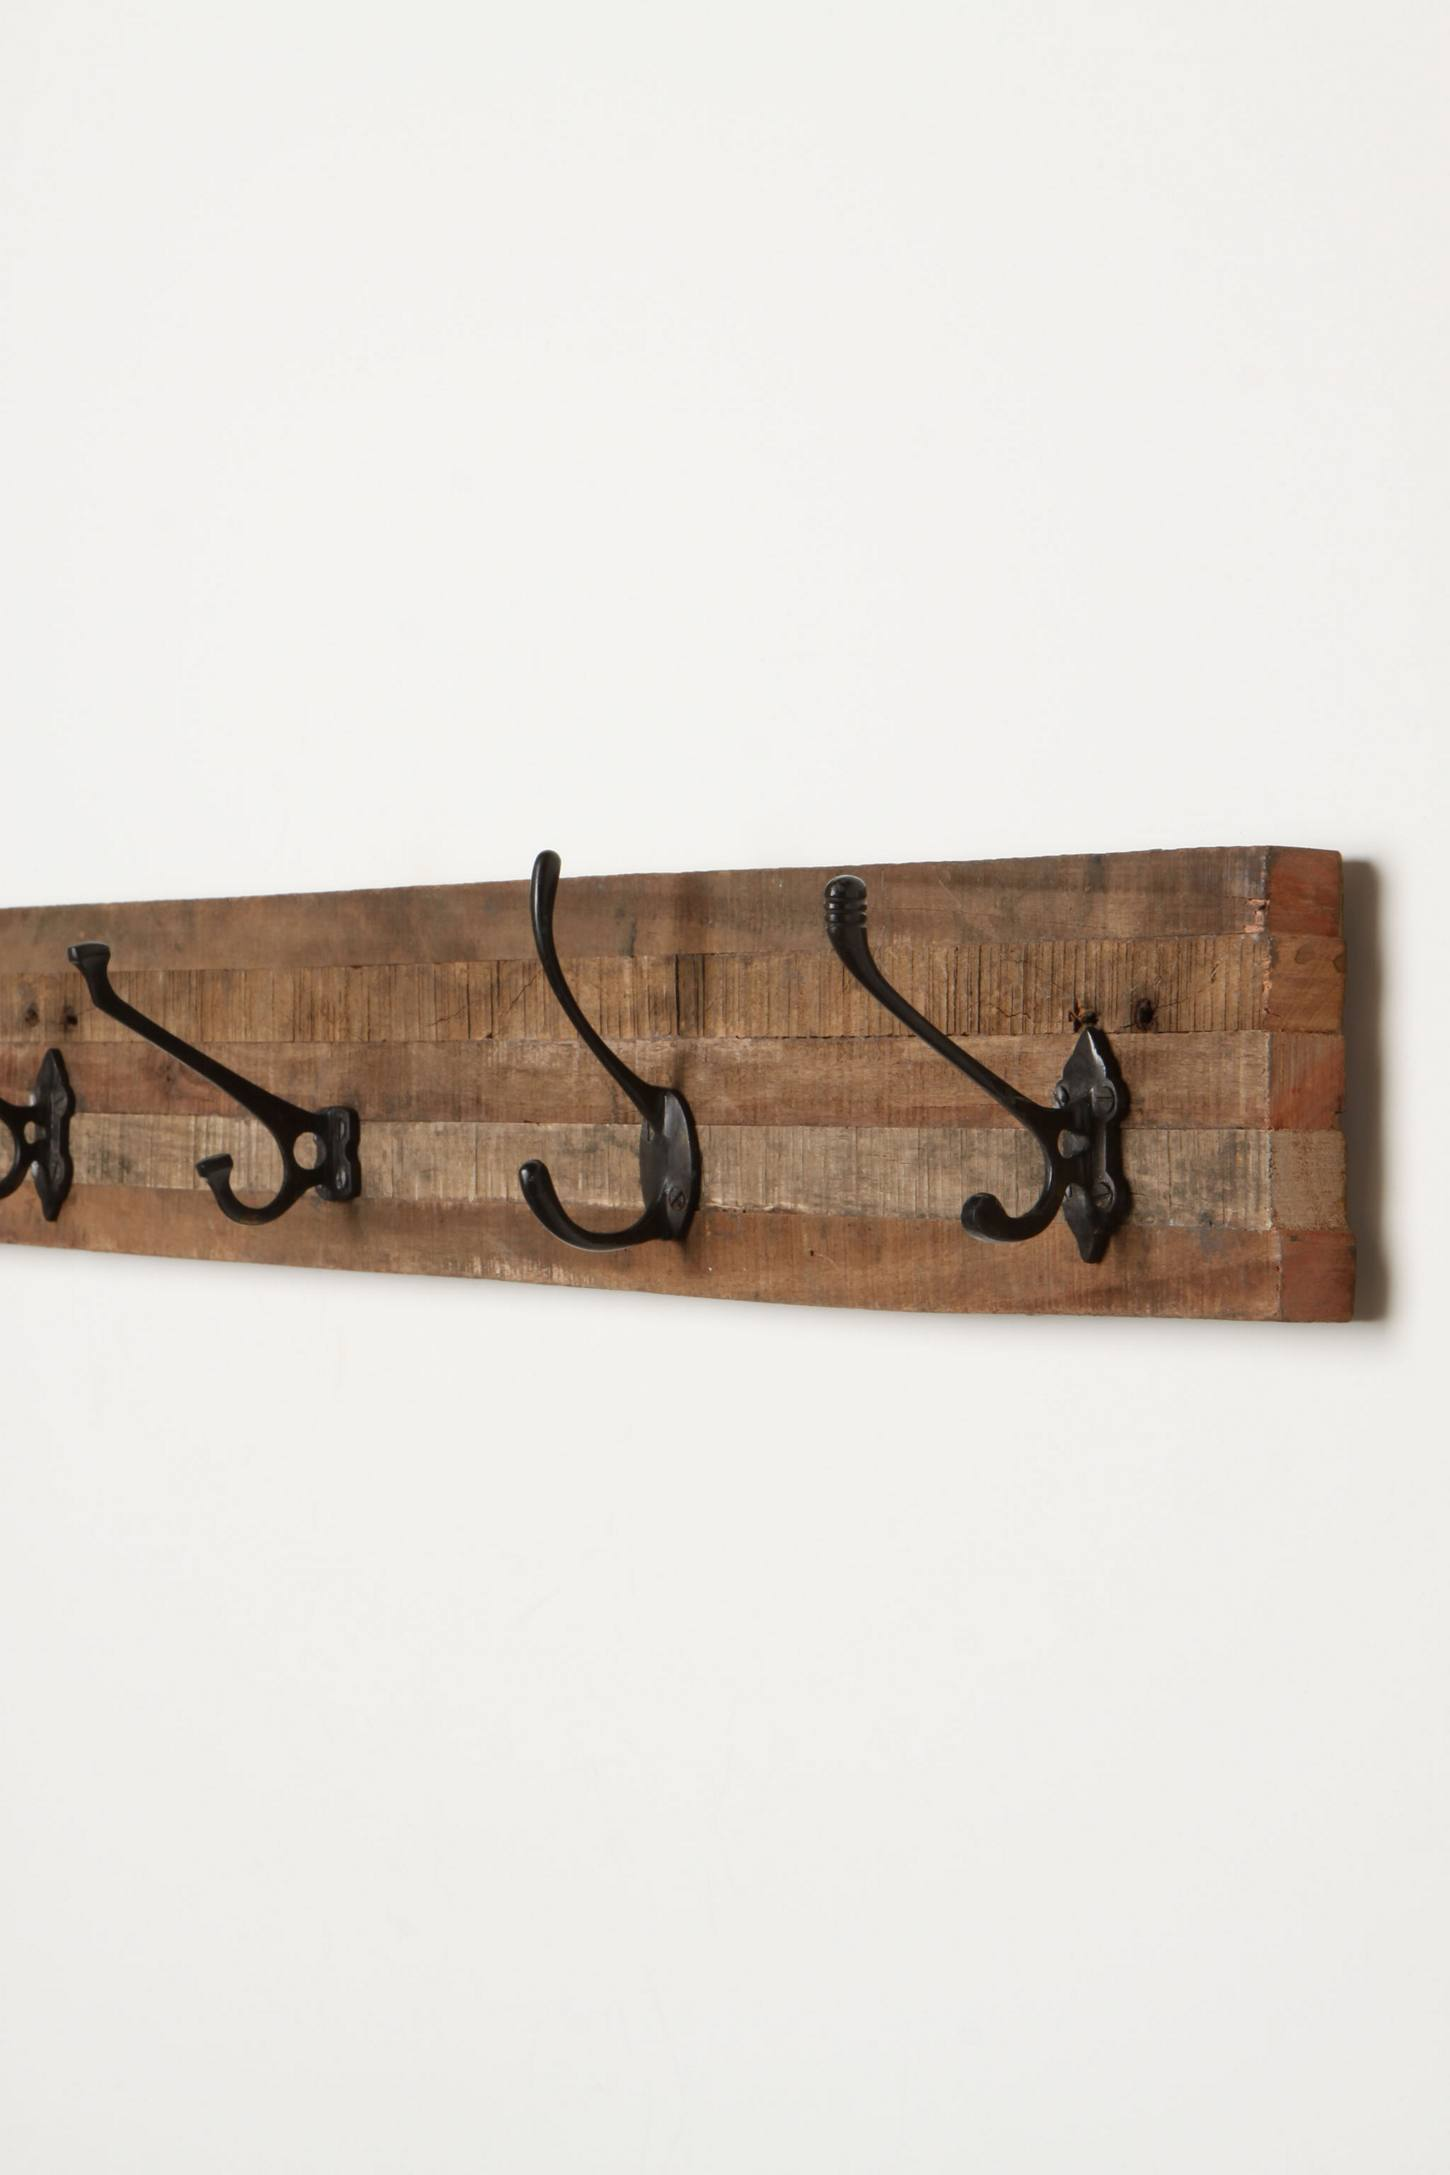 Schoolroom Hook Rack